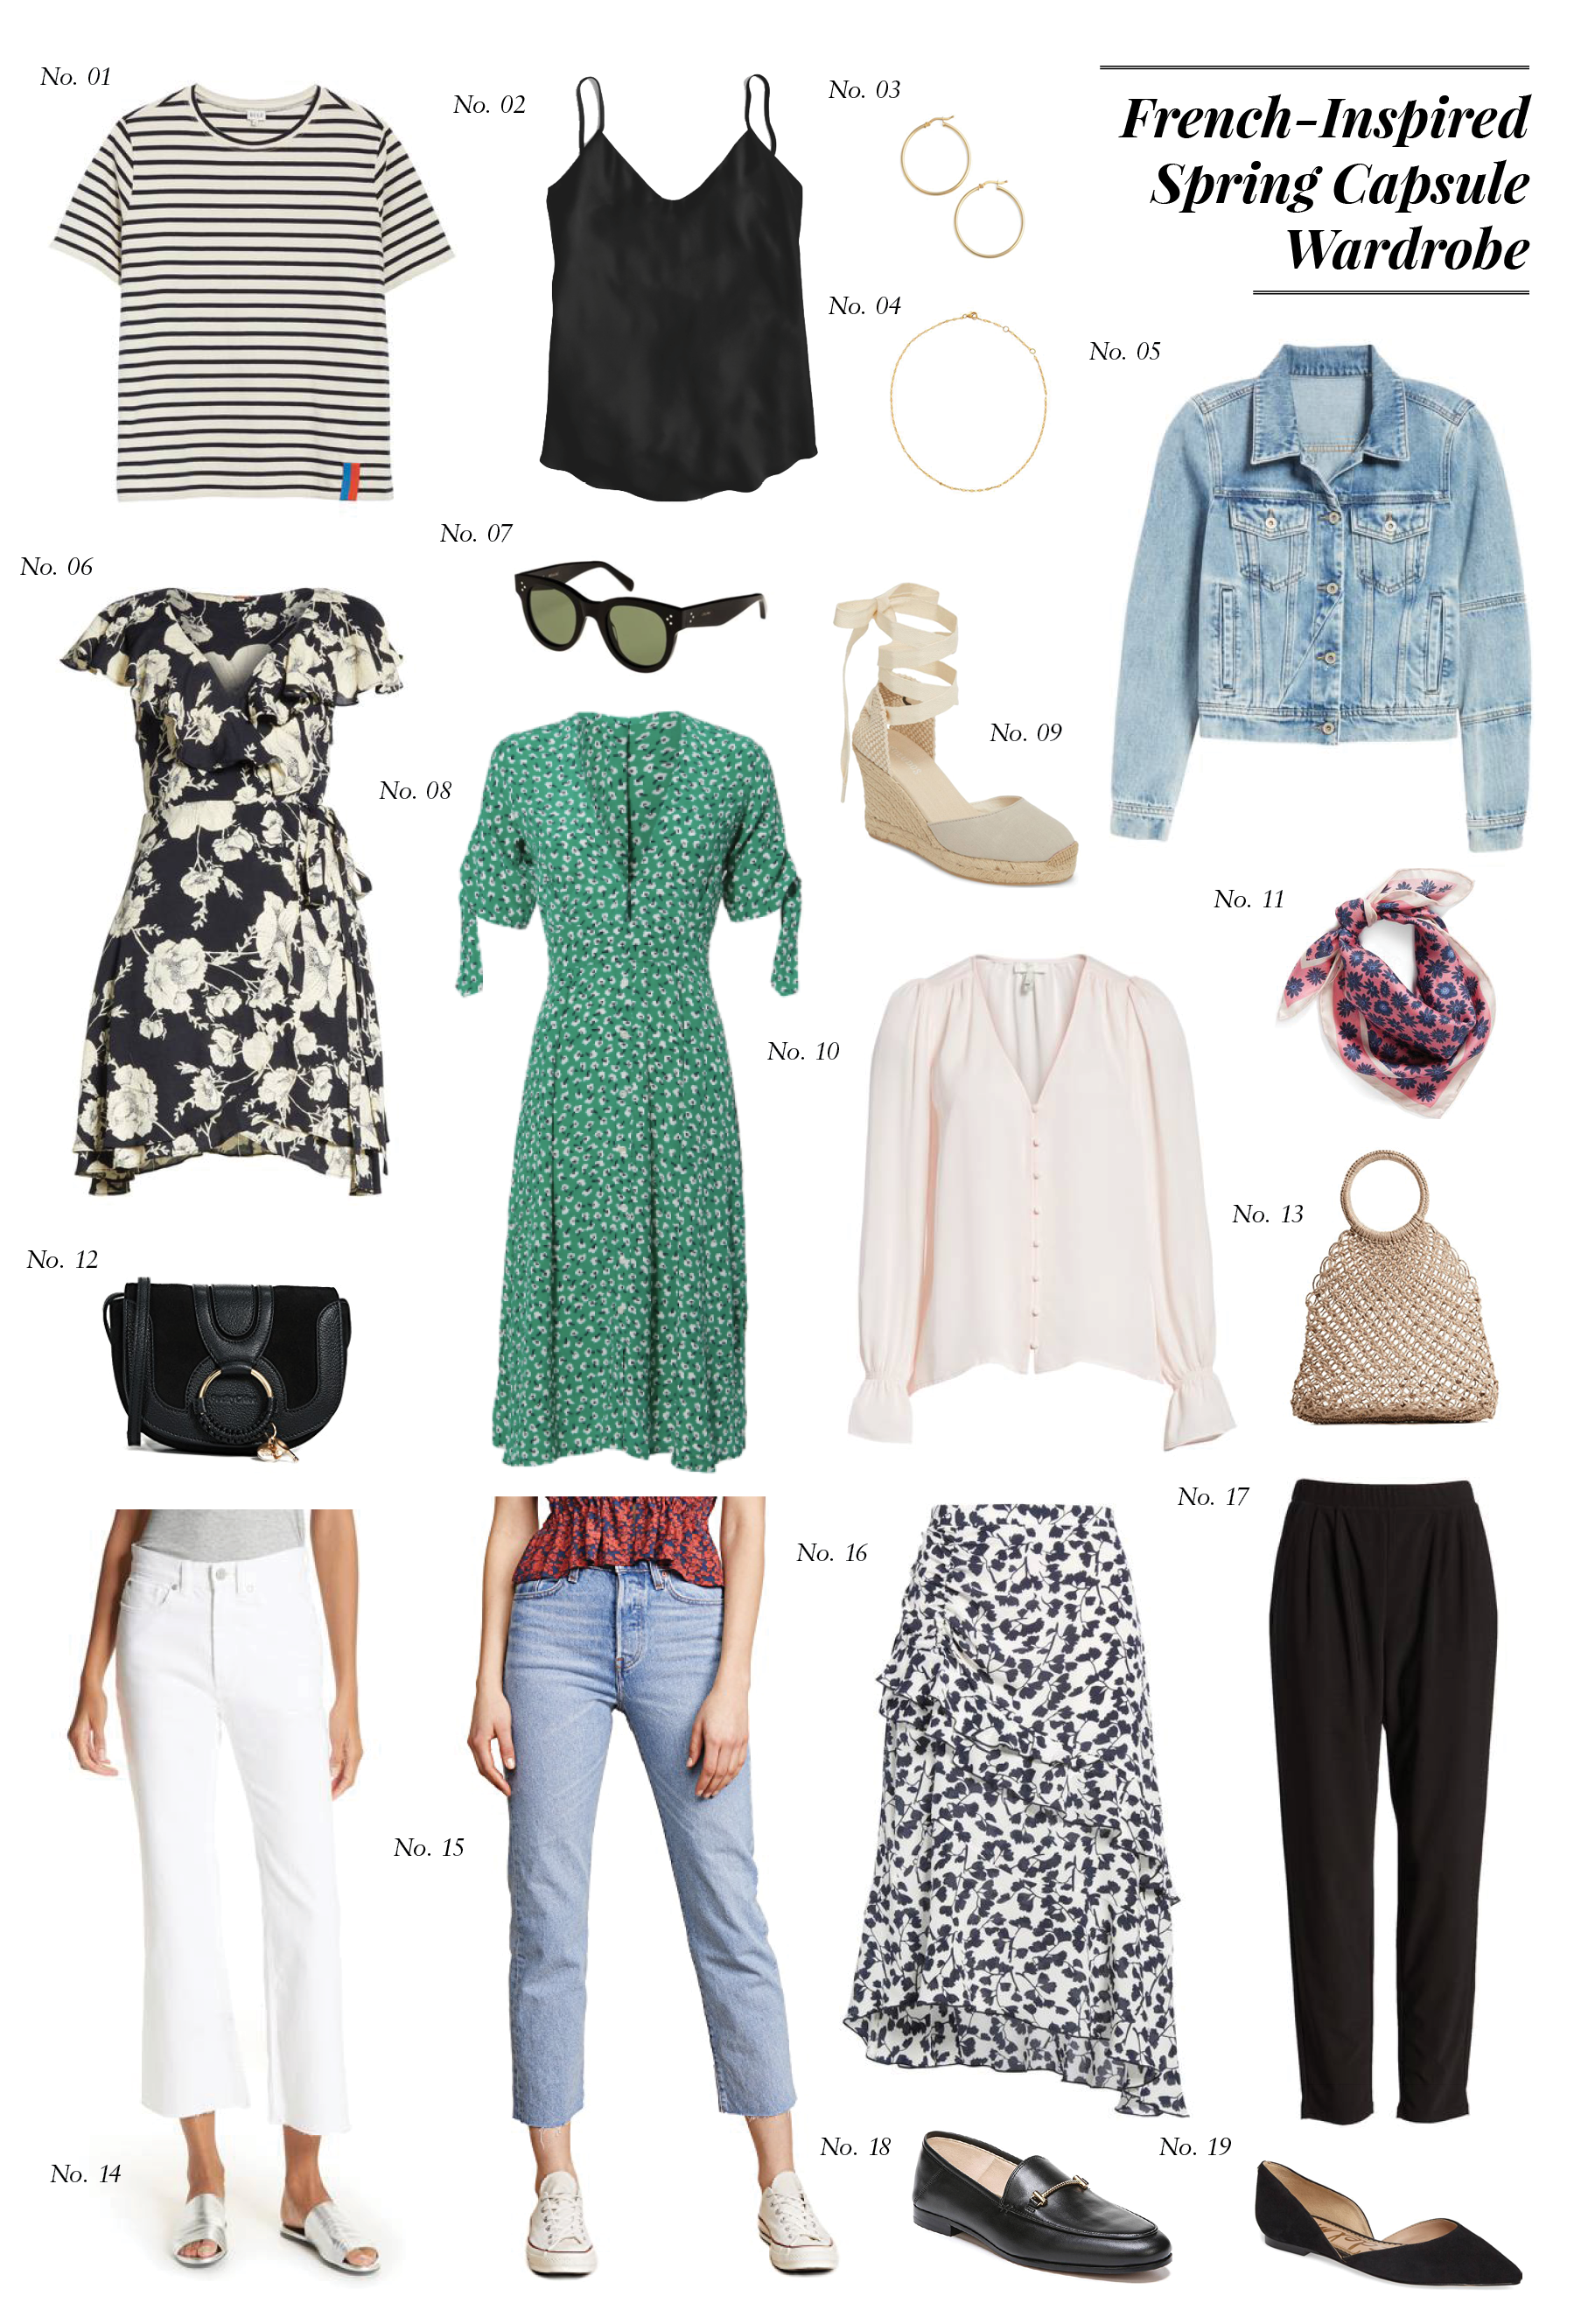 French-Inspired Spring Capsule Wardrobe — Hello Adams Family